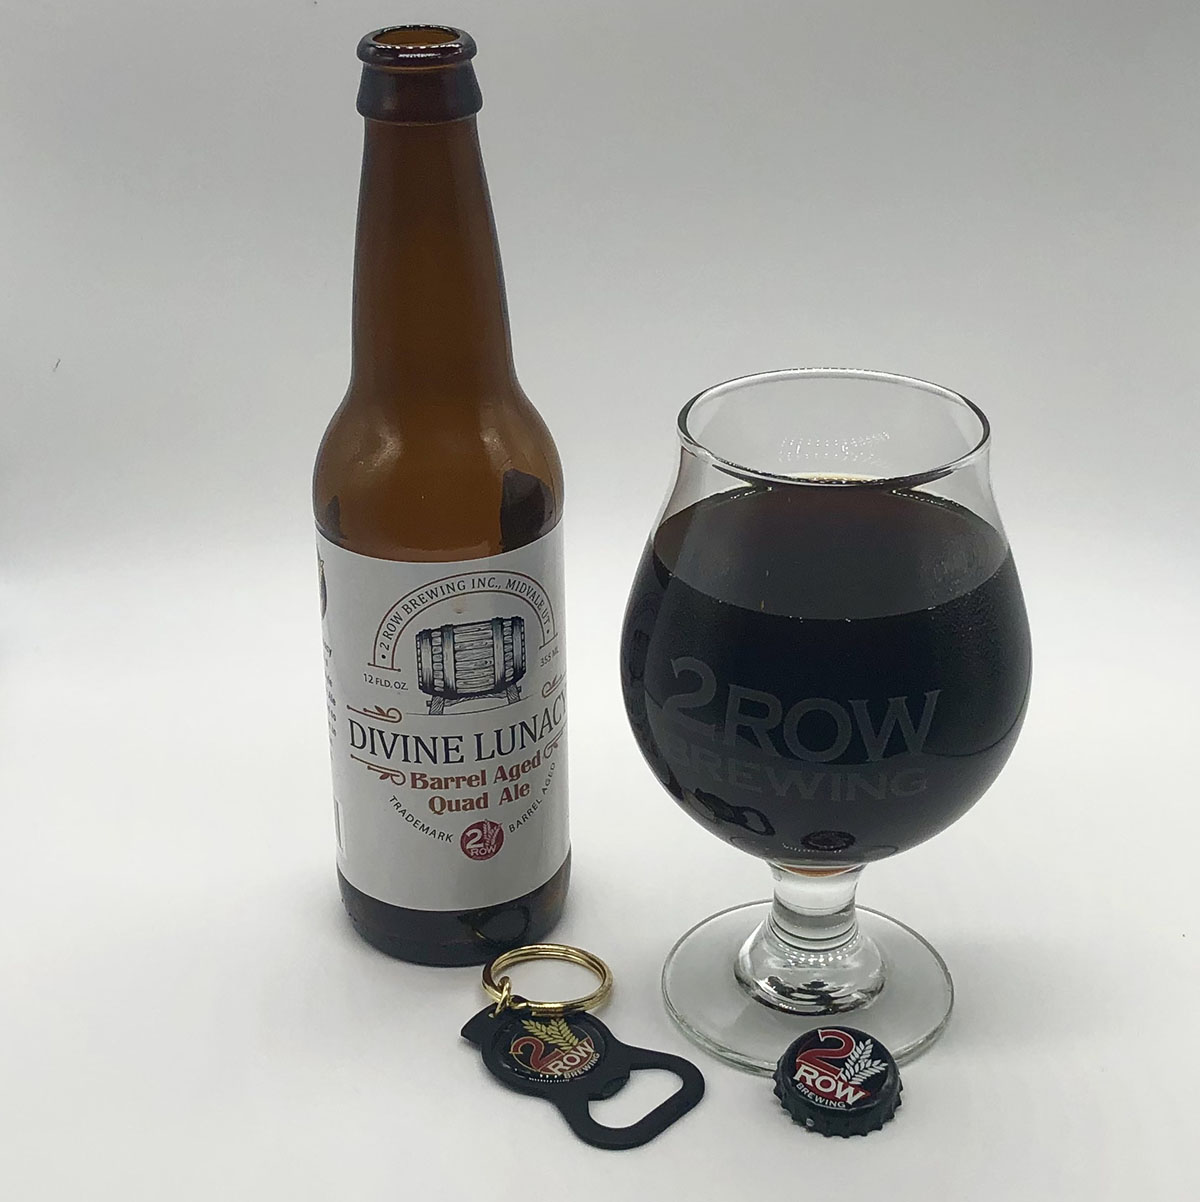 Divine Lunacy, a barrel-aged Belgian Quad by Utah's 2 Row Brewing, clocks in at 11.5% ABV and features aromas of caramel and toffee. Dark, dried fruits are prominent, as is some vanilla, making this a decadent sipper.